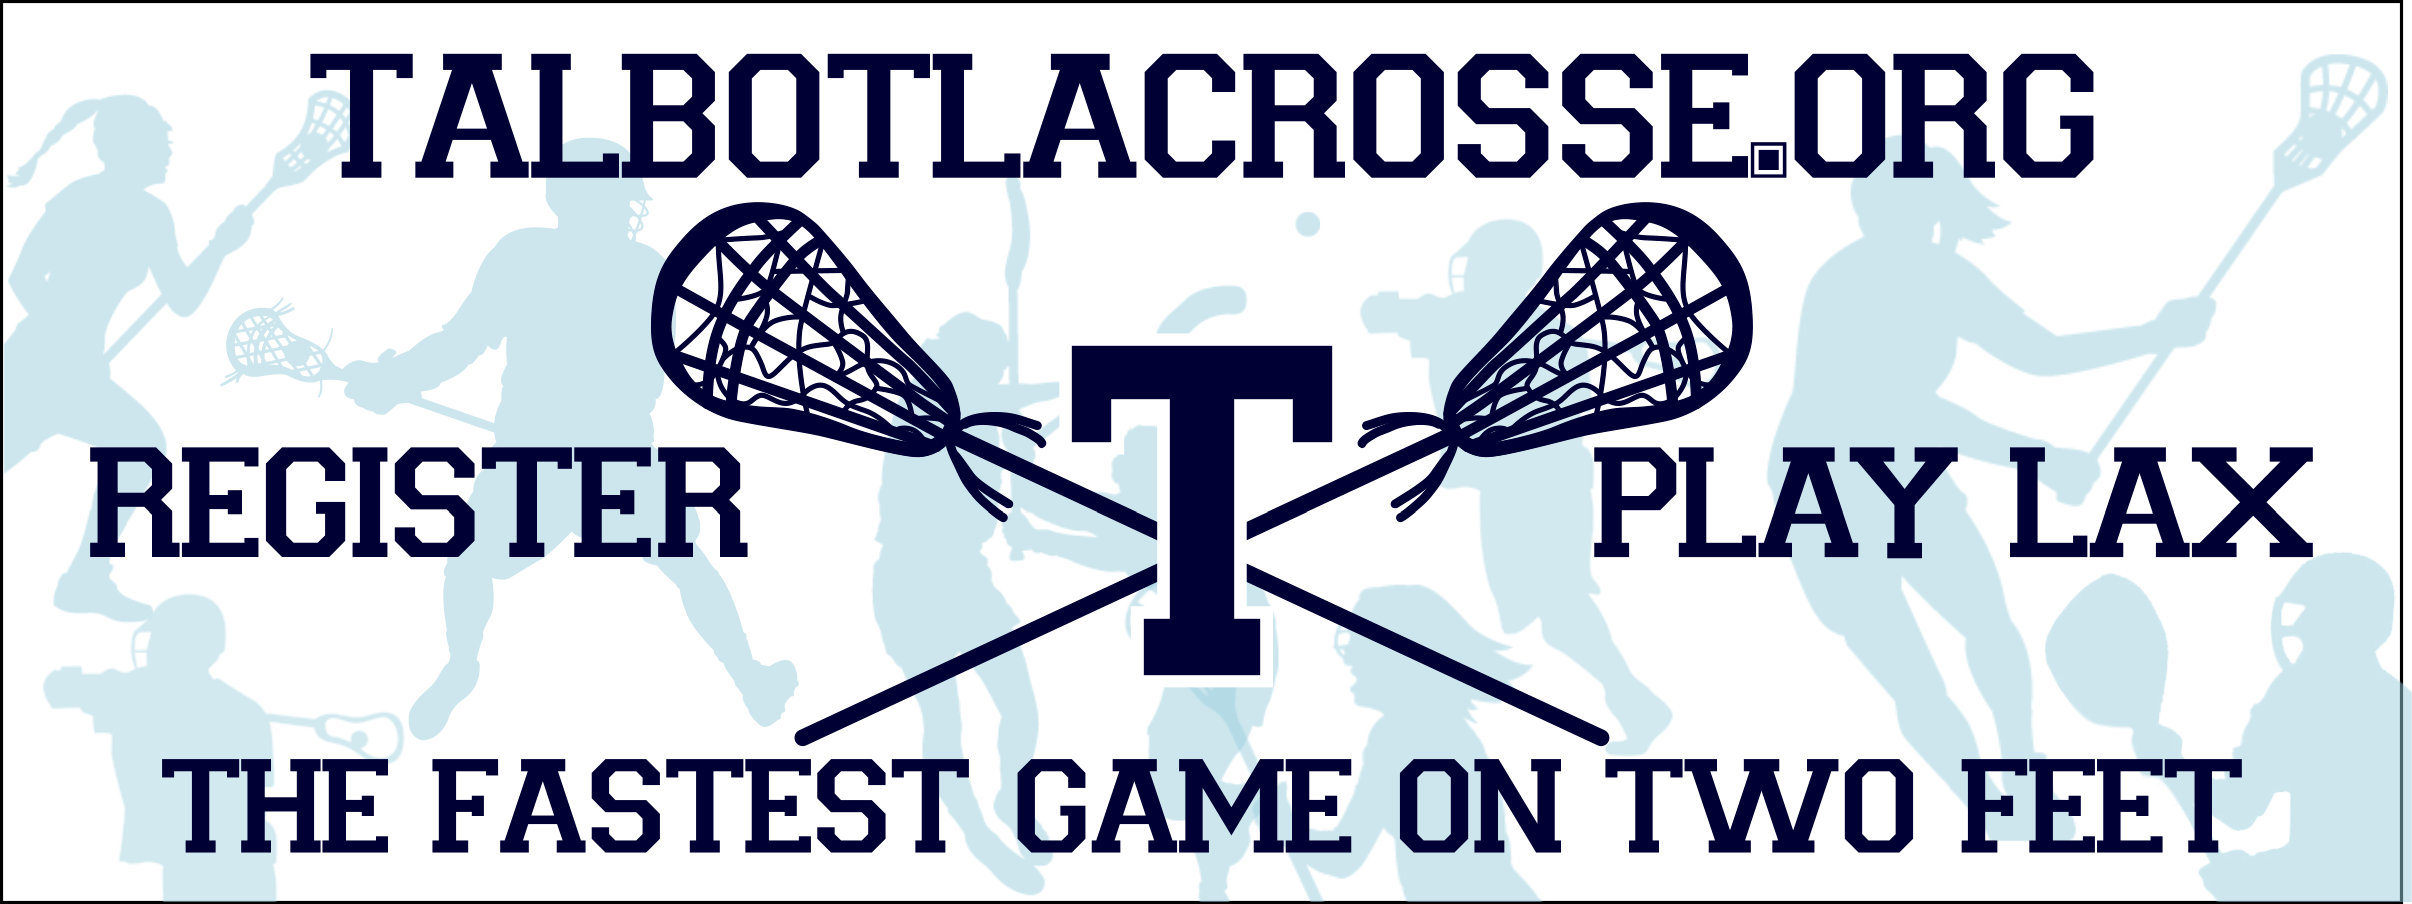 Talbot Lacrosse Association, Lacrosse, Goal, Field